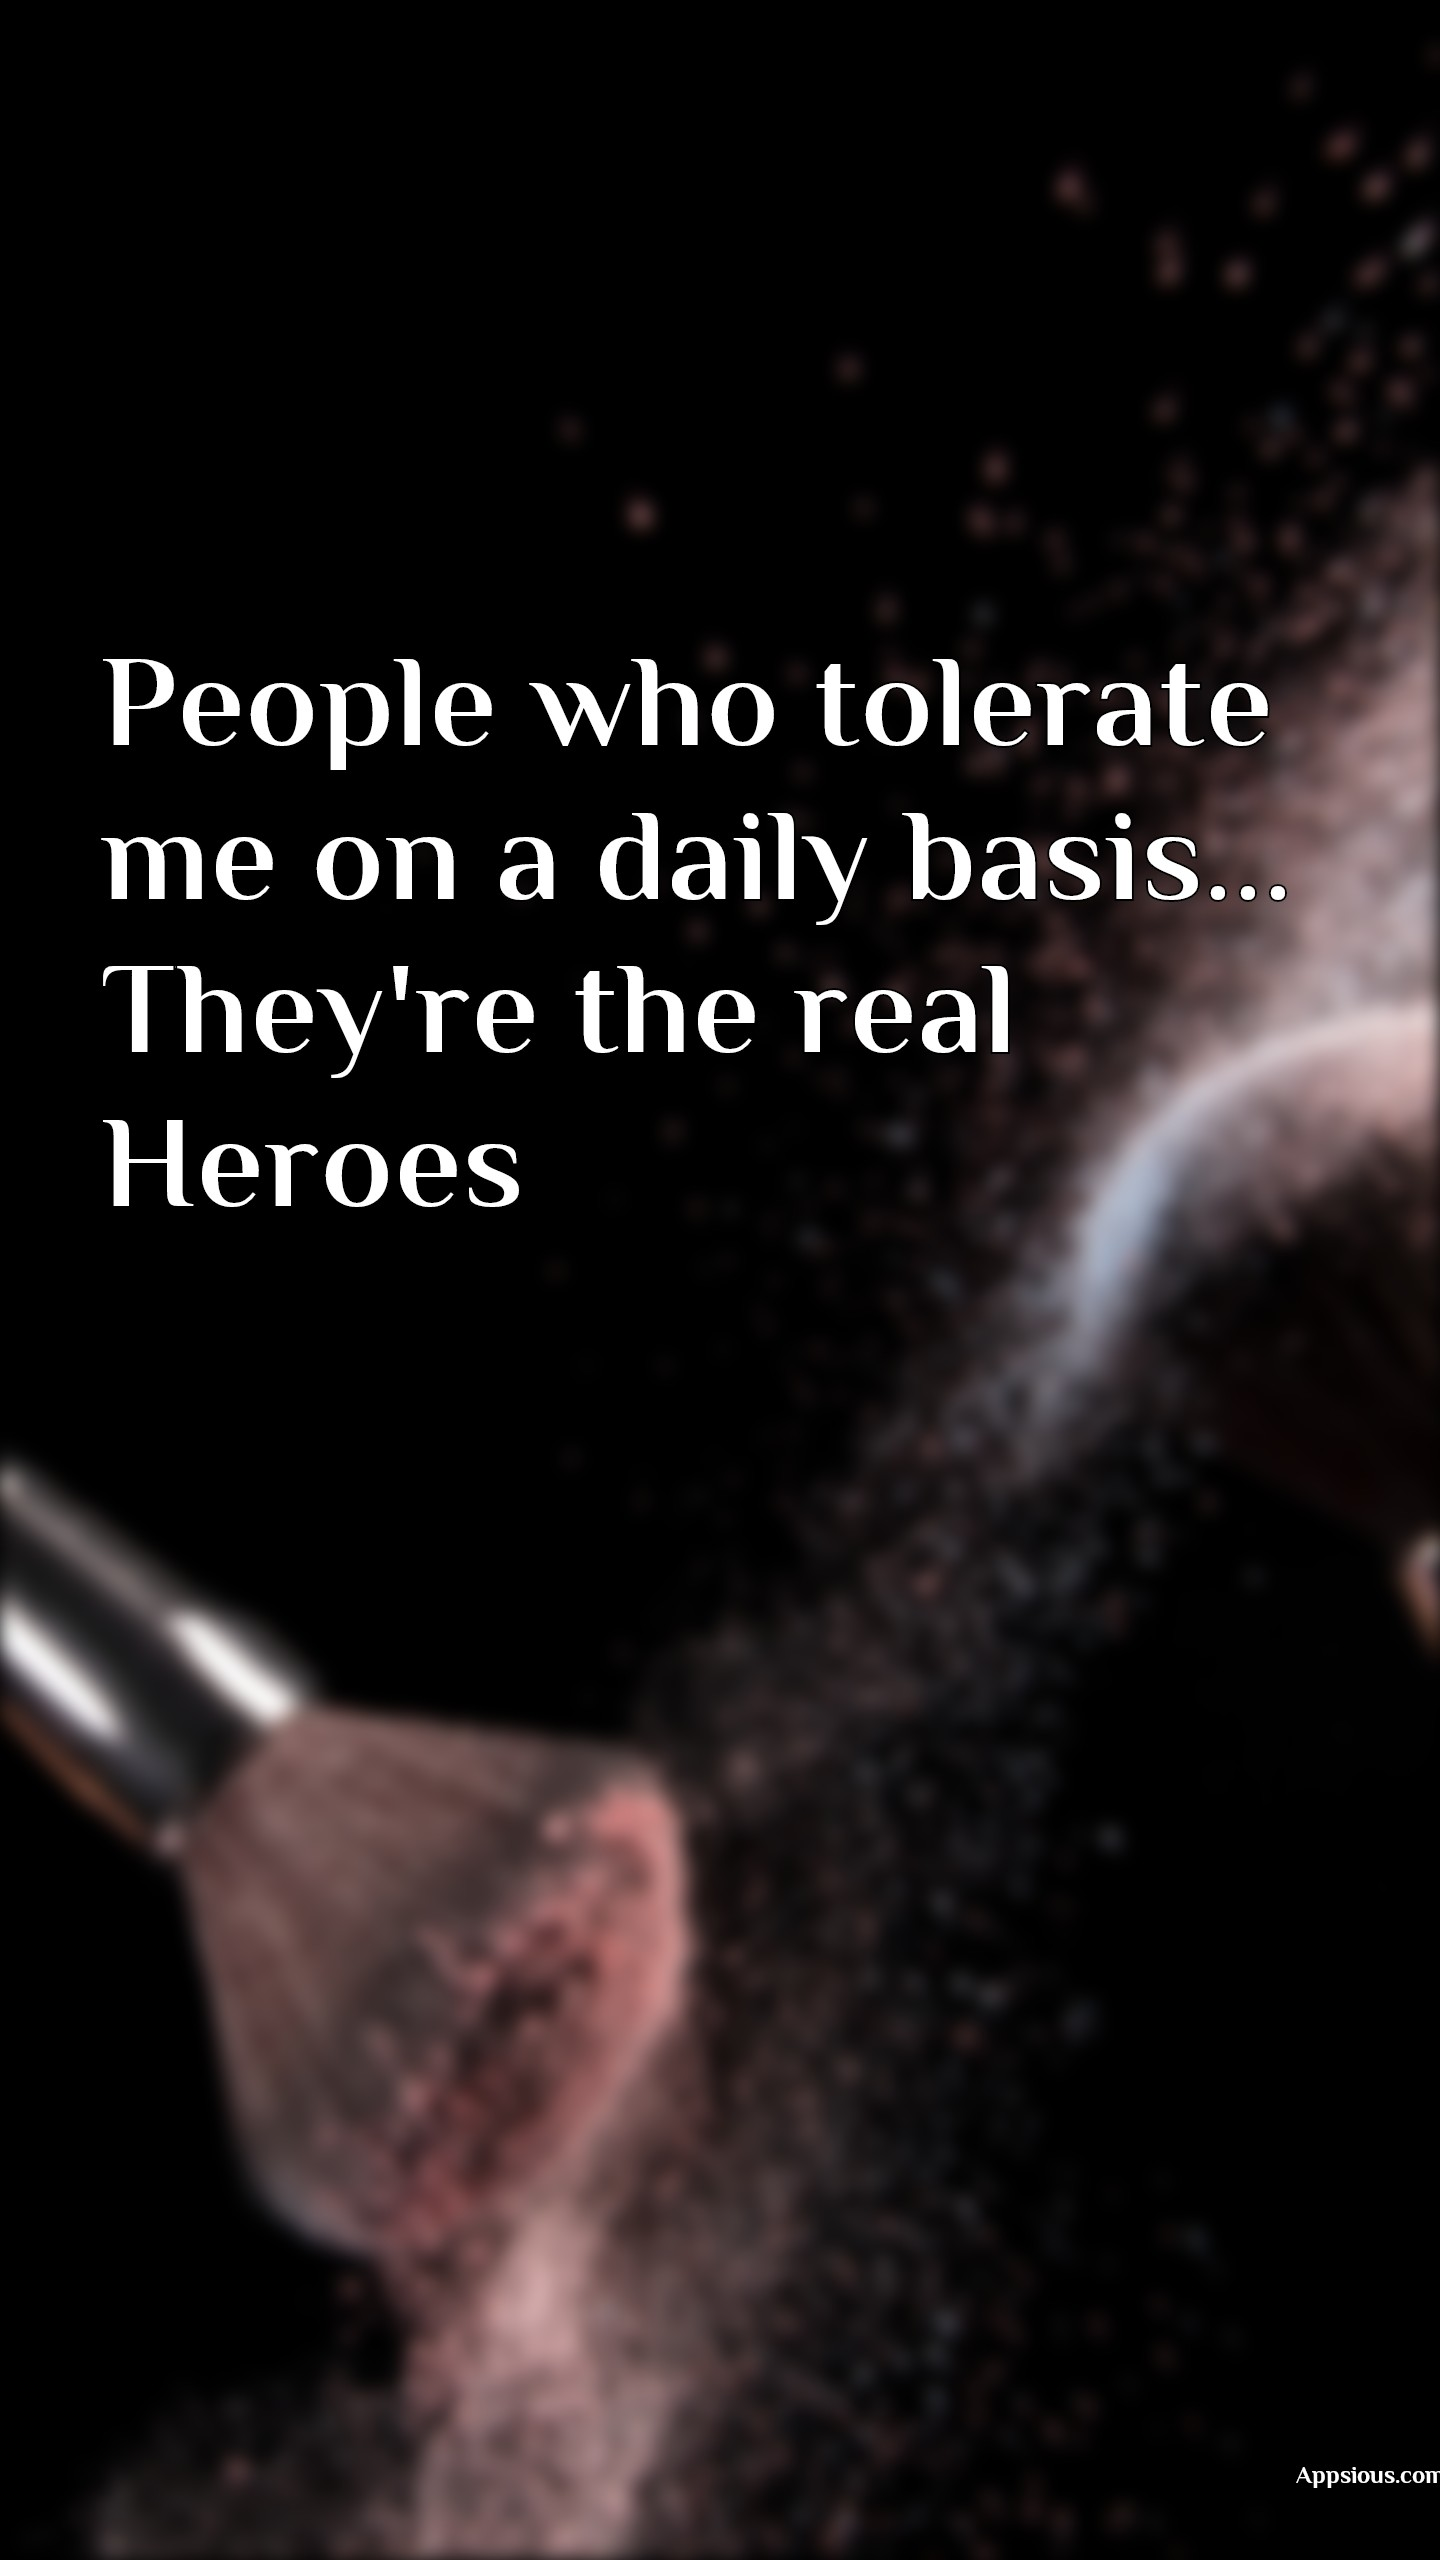 People who tolerate me on a daily basis... They're the real Heroes